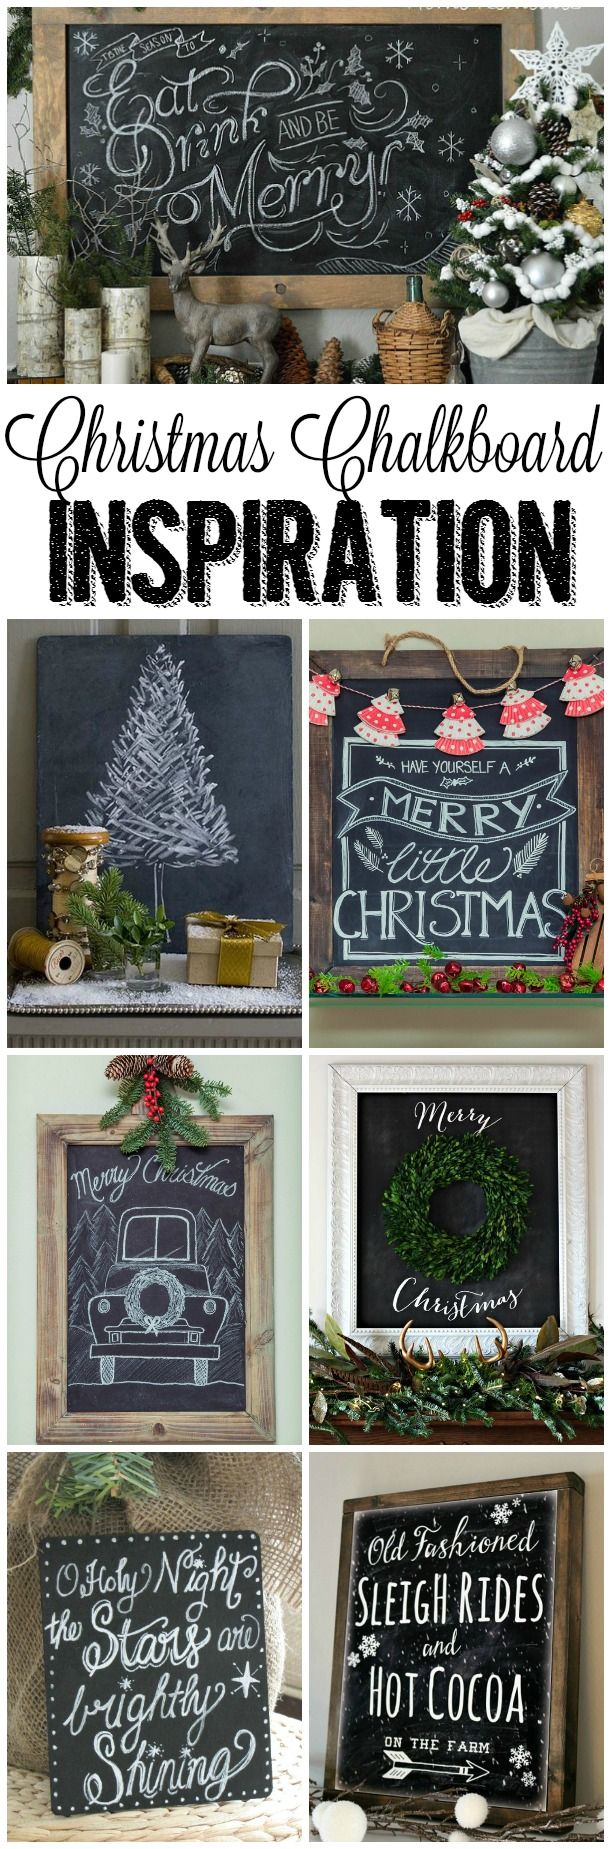 beautiful Christmas decor | decor ideas for Christmas | Christmas decor ideas | Christmas Season | farmhouse christmas | beautiful Christmas chalkboards